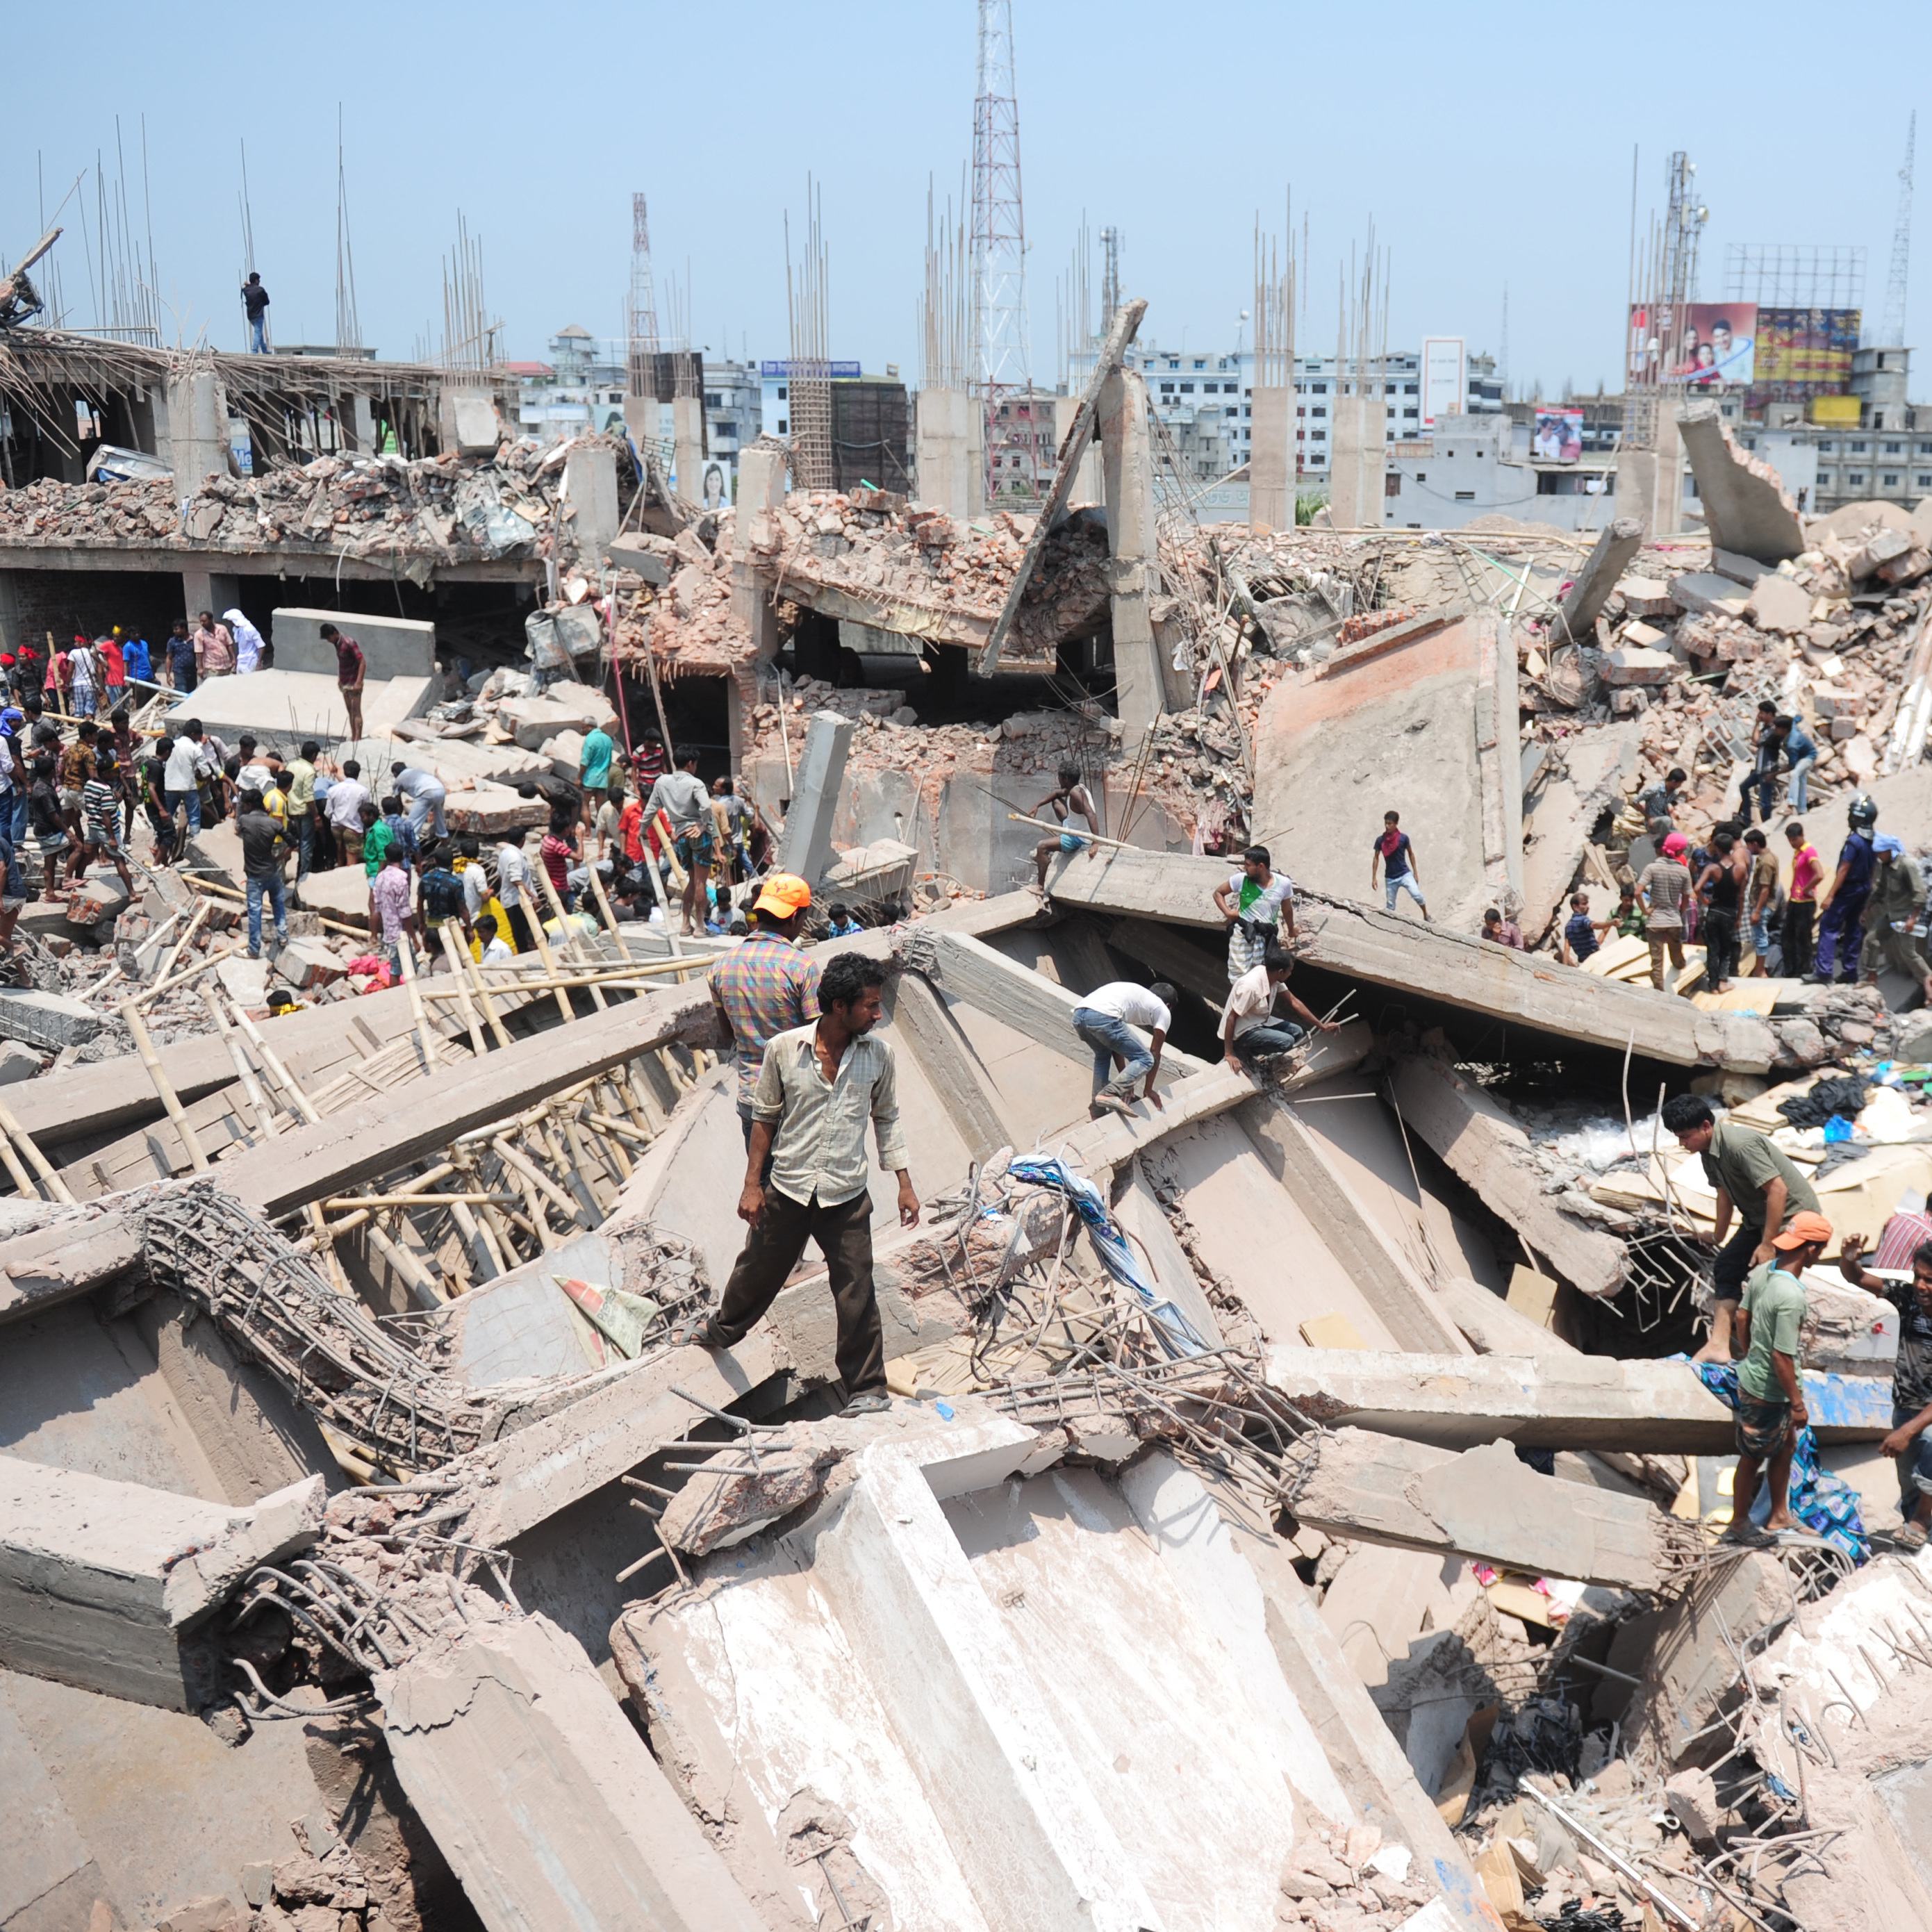 Volunteers assist in rescue operations after the building collapse in Savar, on the outskirts of Dhaka, on Wednesday.